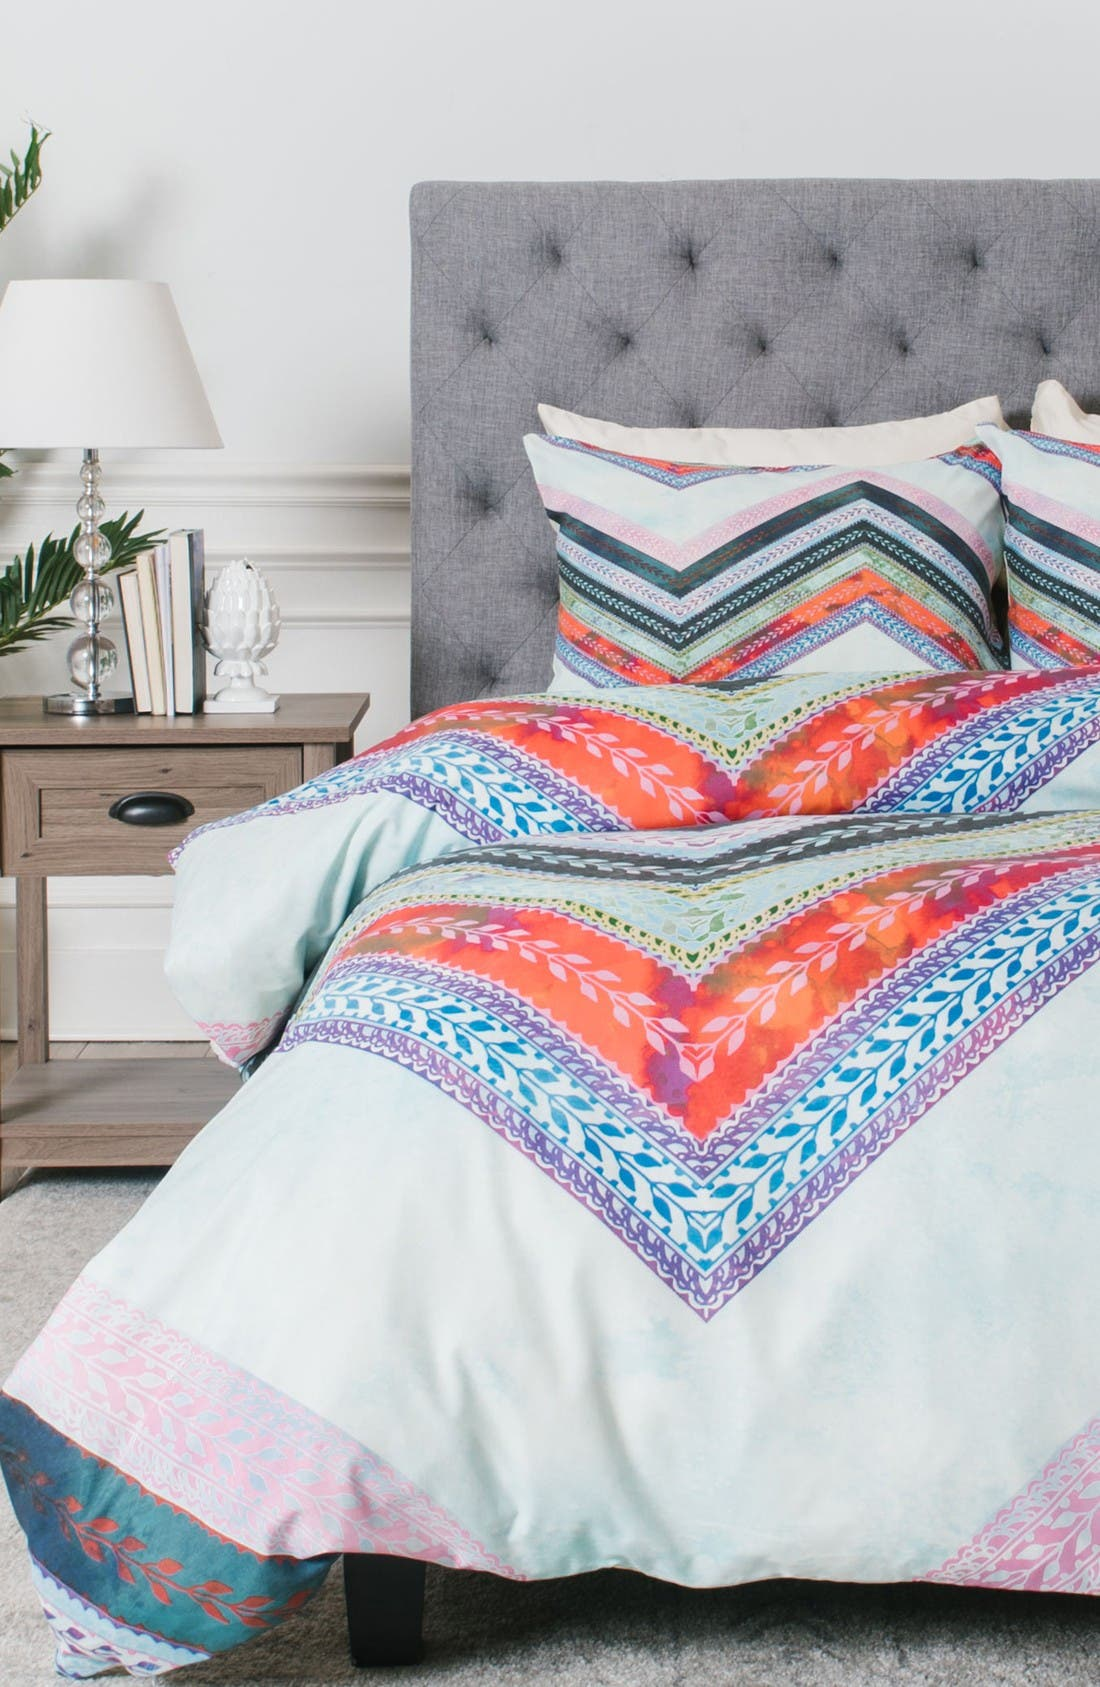 Alternate Image 1 Selected - Deny Designs Boho Chevron Duvet Cover & Sham Set